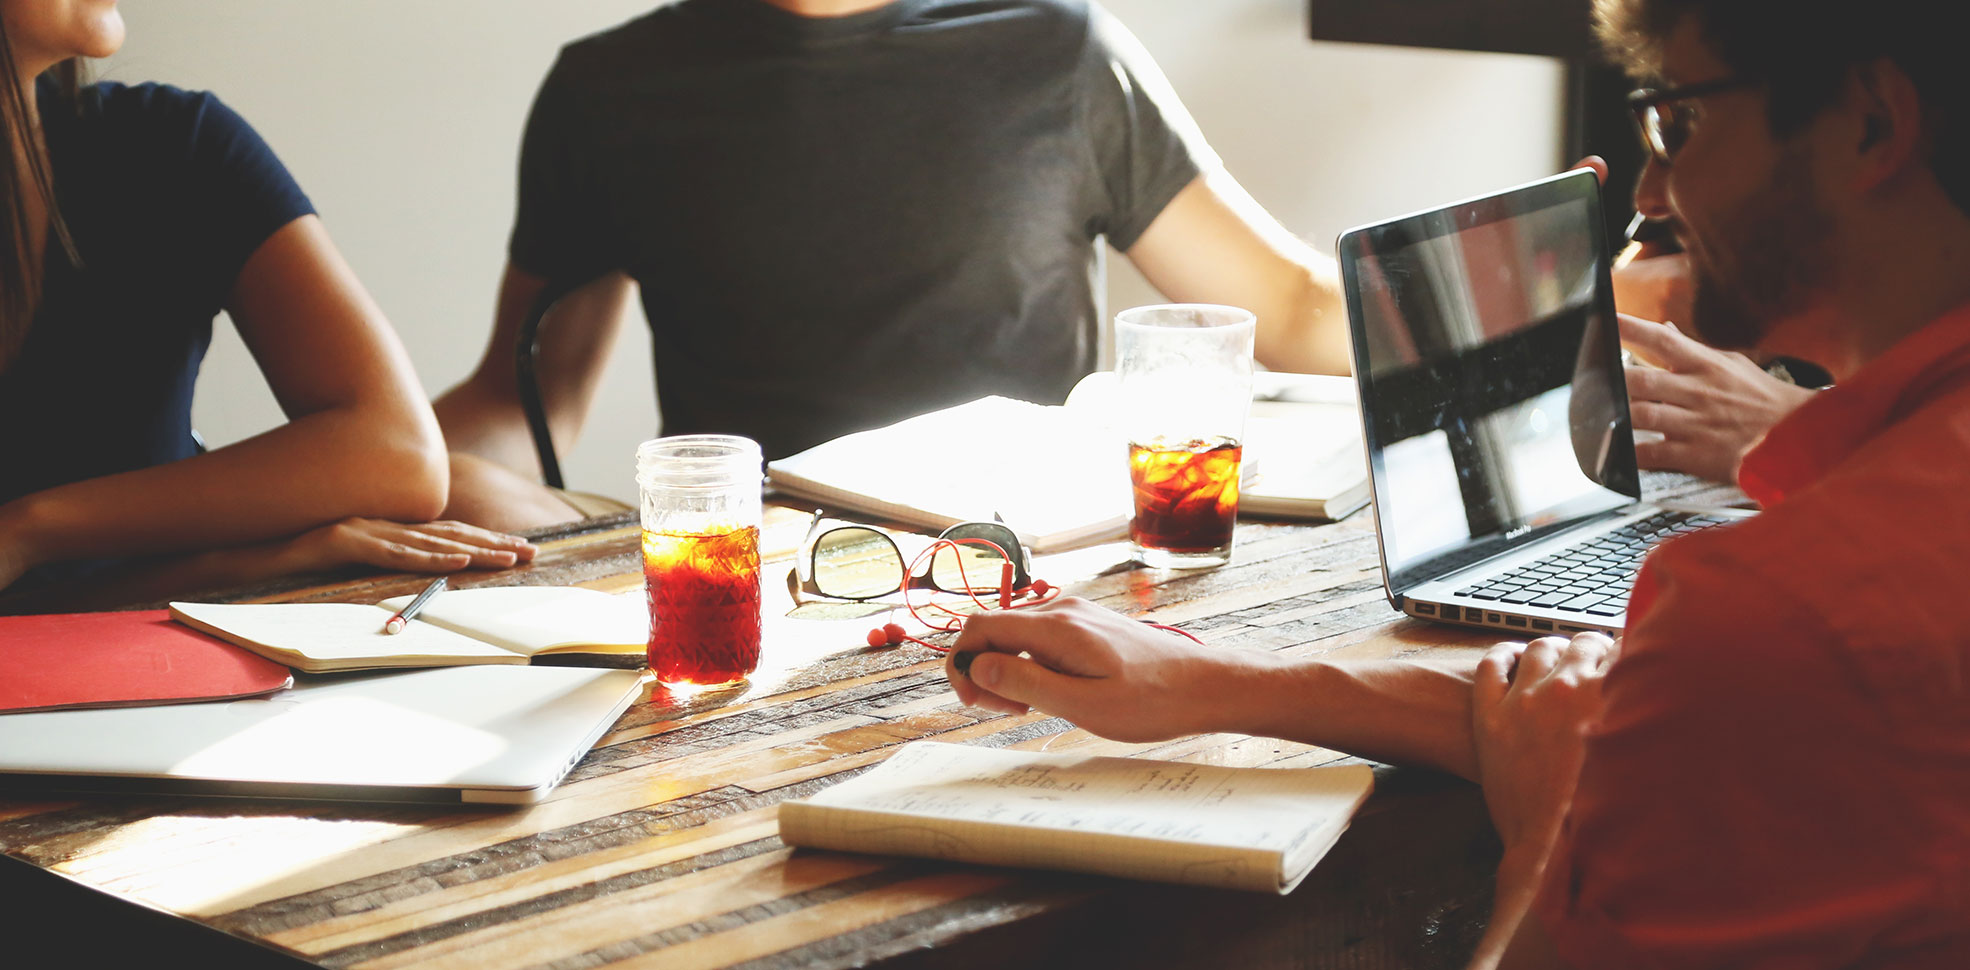 We all know that an engaged workforce is more productive. But could the reverse be true?